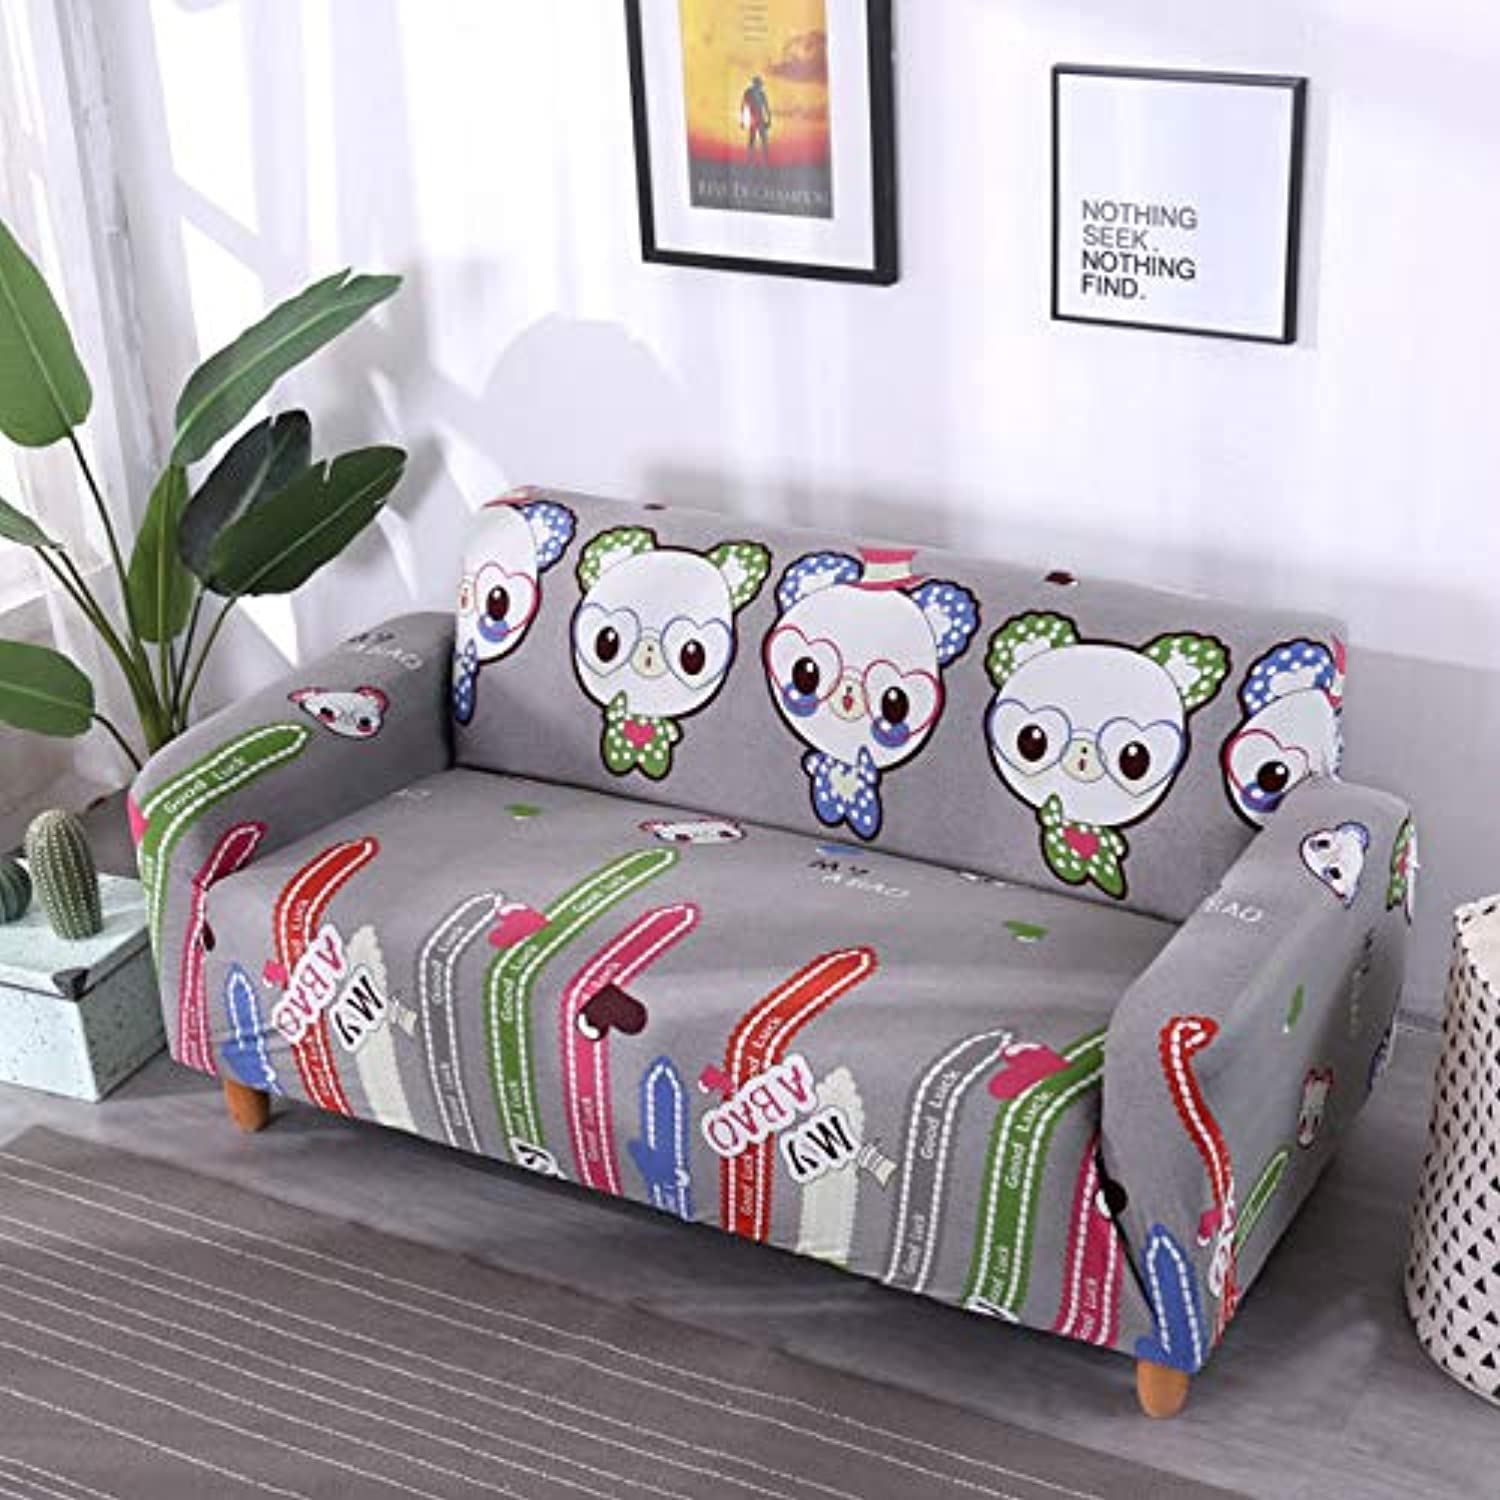 Universal Size 1 2 3 4 Seater Sofa Cover Tight wrap All-Inclusive sectional Elastic seat Covers Couch Covering Slipcovers   6421, 1 Seater 90-140cm